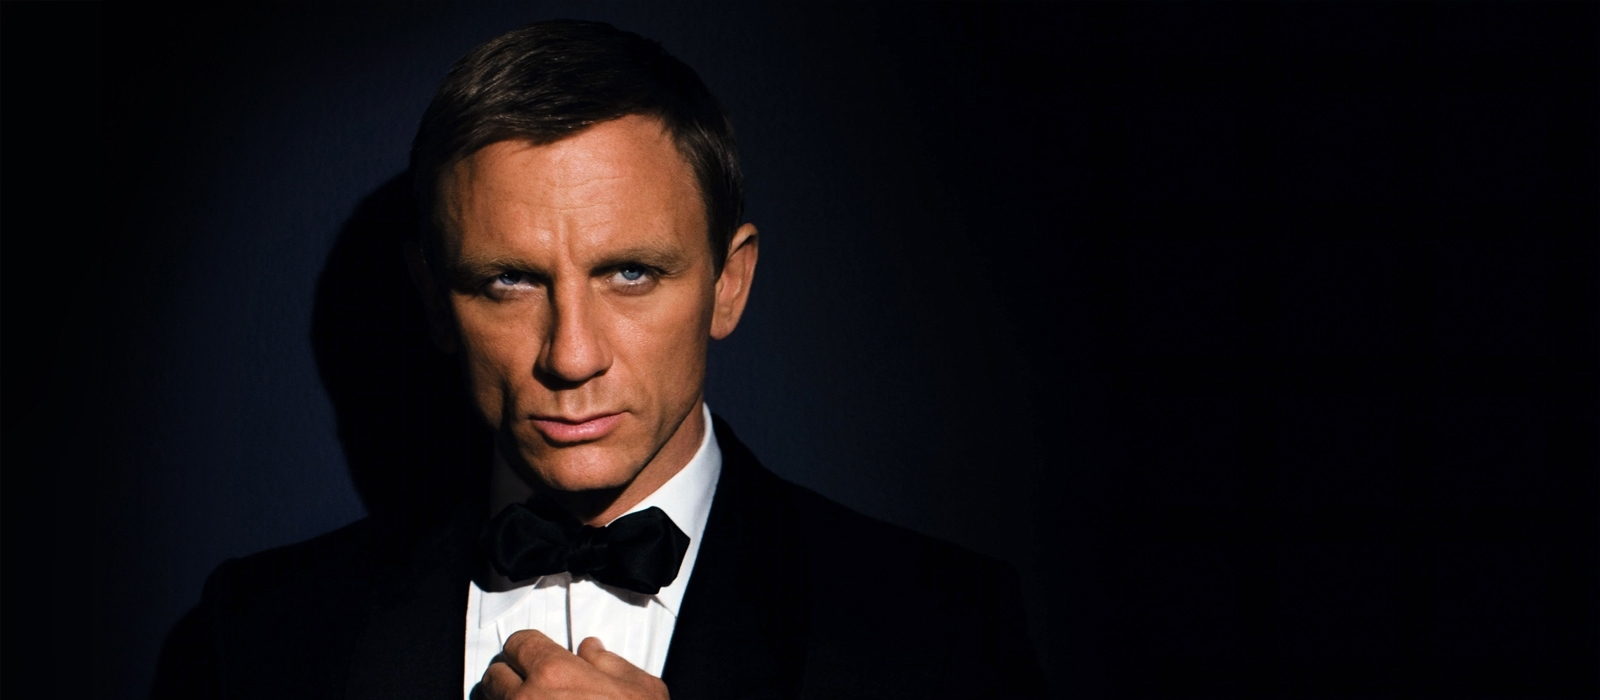 Russia's calling code is 007